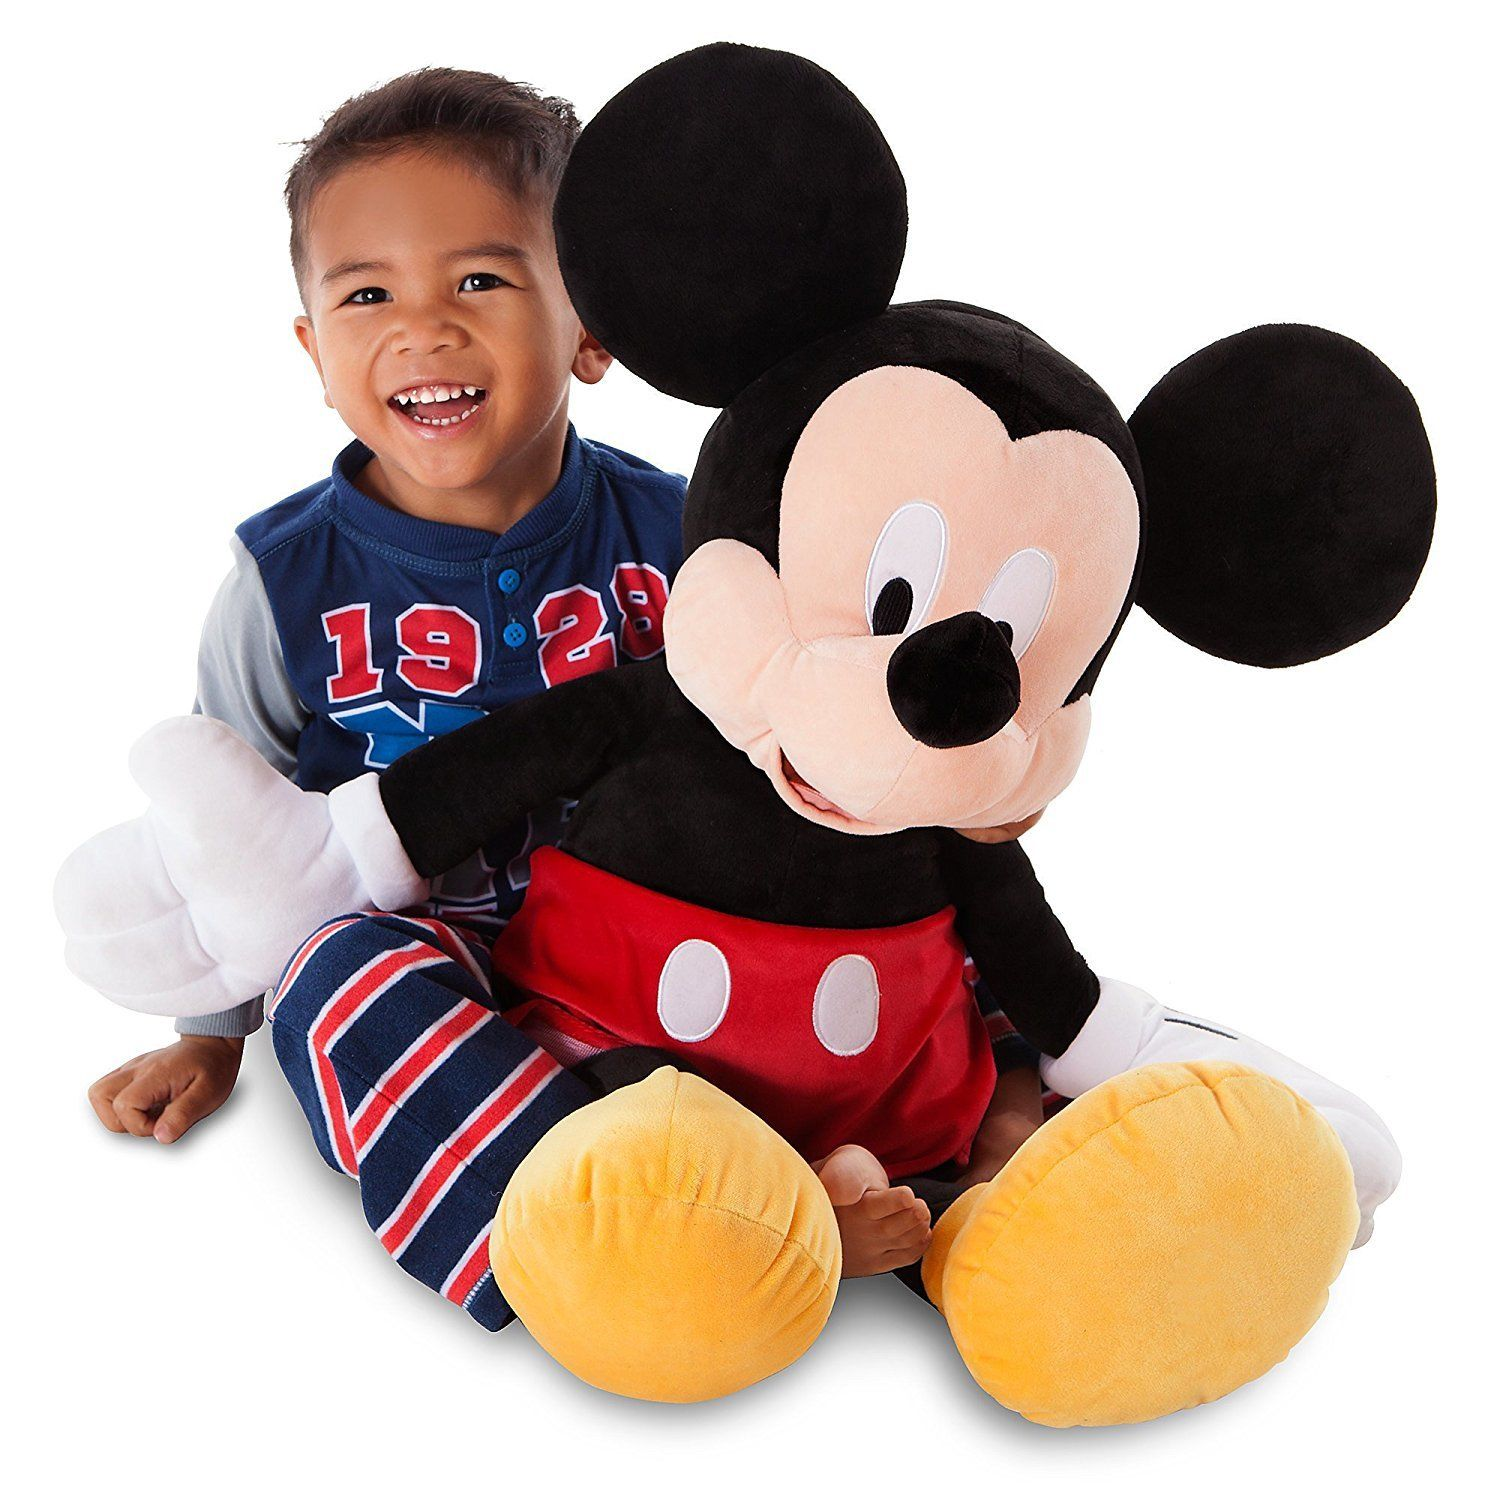 Disney Deluxe Mickey Mouse BIG Jumbo Large Plush